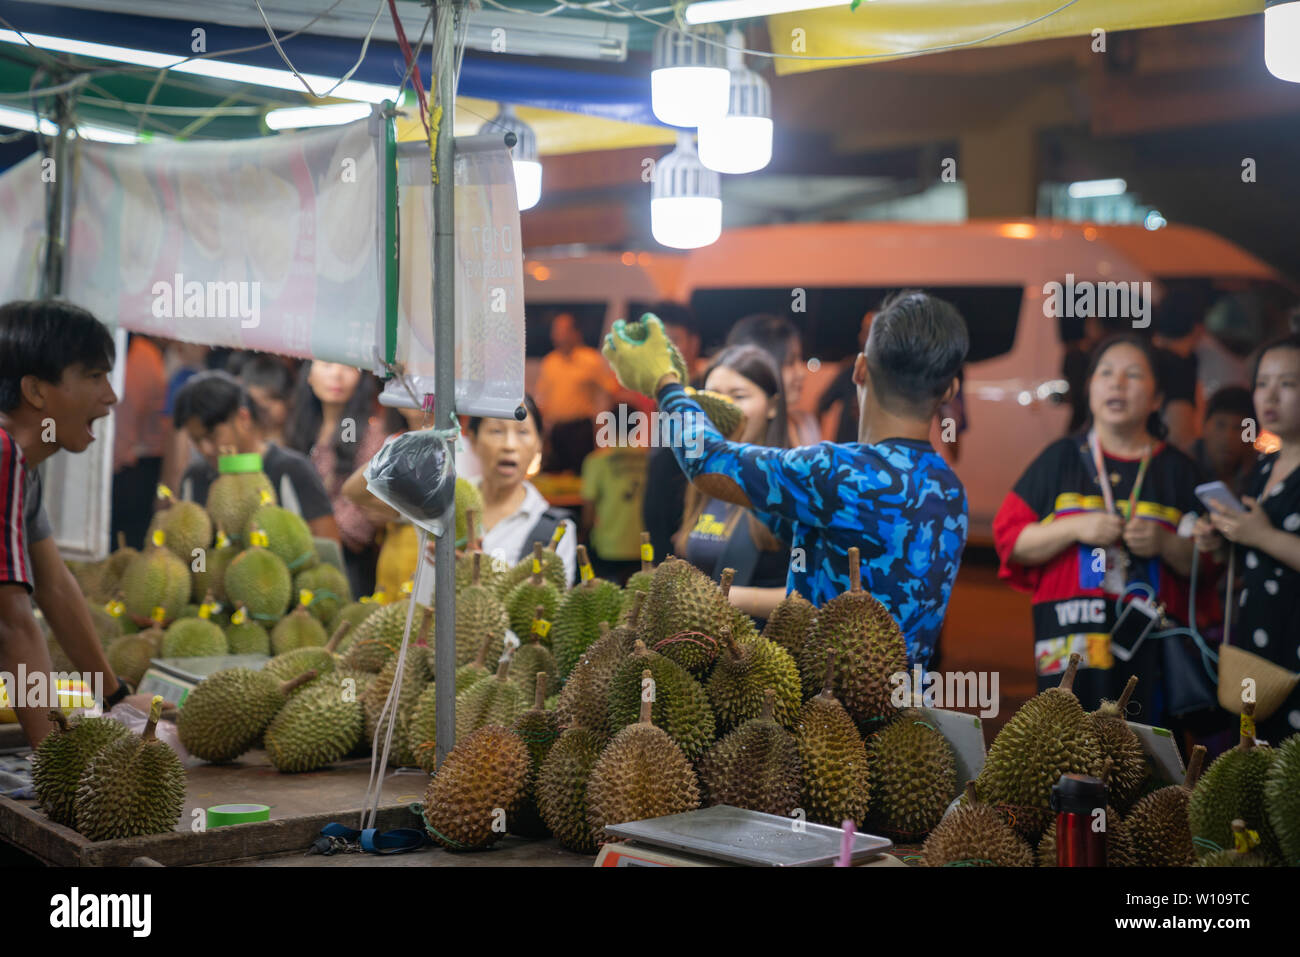 KOTA KINABULU, BORNEO - JUNE 1 2019; Night street market for locals  selling delicacy but smelly durian fruit stacked on bench vendor and passers-by. - Stock Image